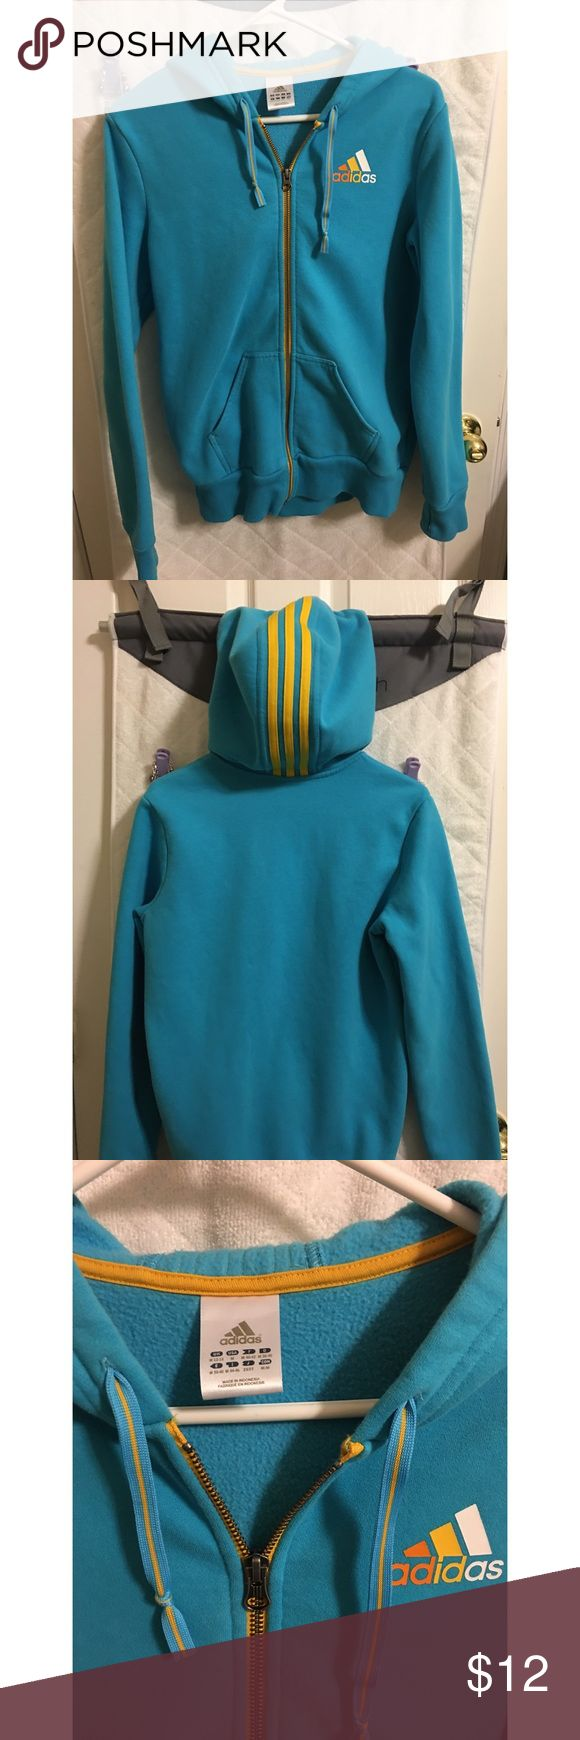 Adidas Zip-Up Hoodie ▪️Blue and orange striped zip up hoodie ▪️Has thumb holes in sleeves  ▪️Adidas logo on front ▪️Worn twice ▪️Has two front pockets as well ▪️Nice soft material adidas Jackets & Coats